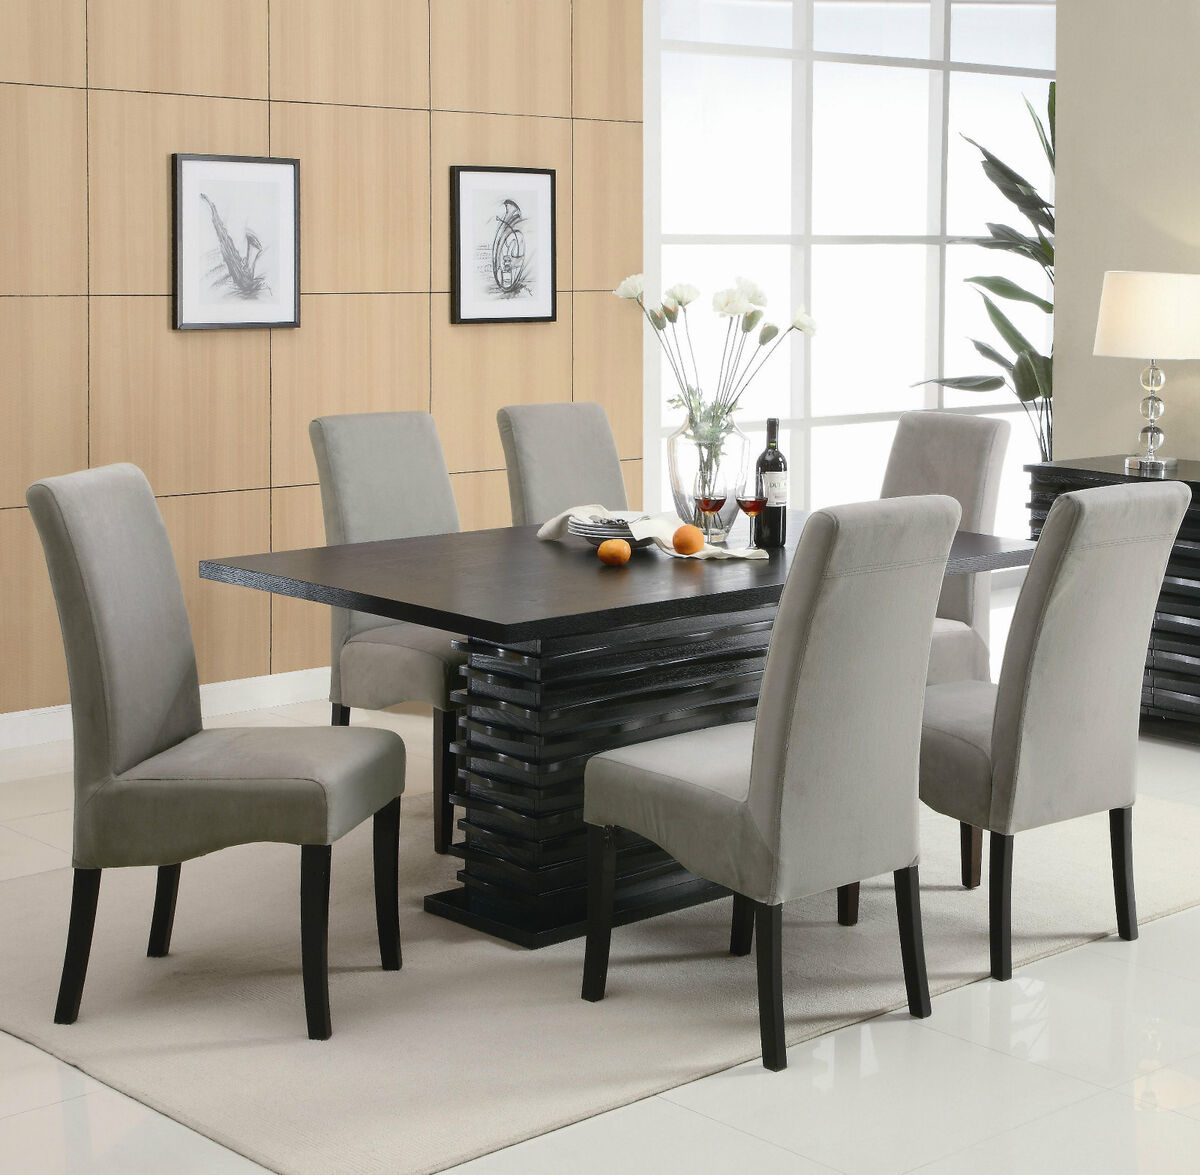 Contemporary black dining table chairs dining room furniture set sale - Contemporary dining room sets furniture ...